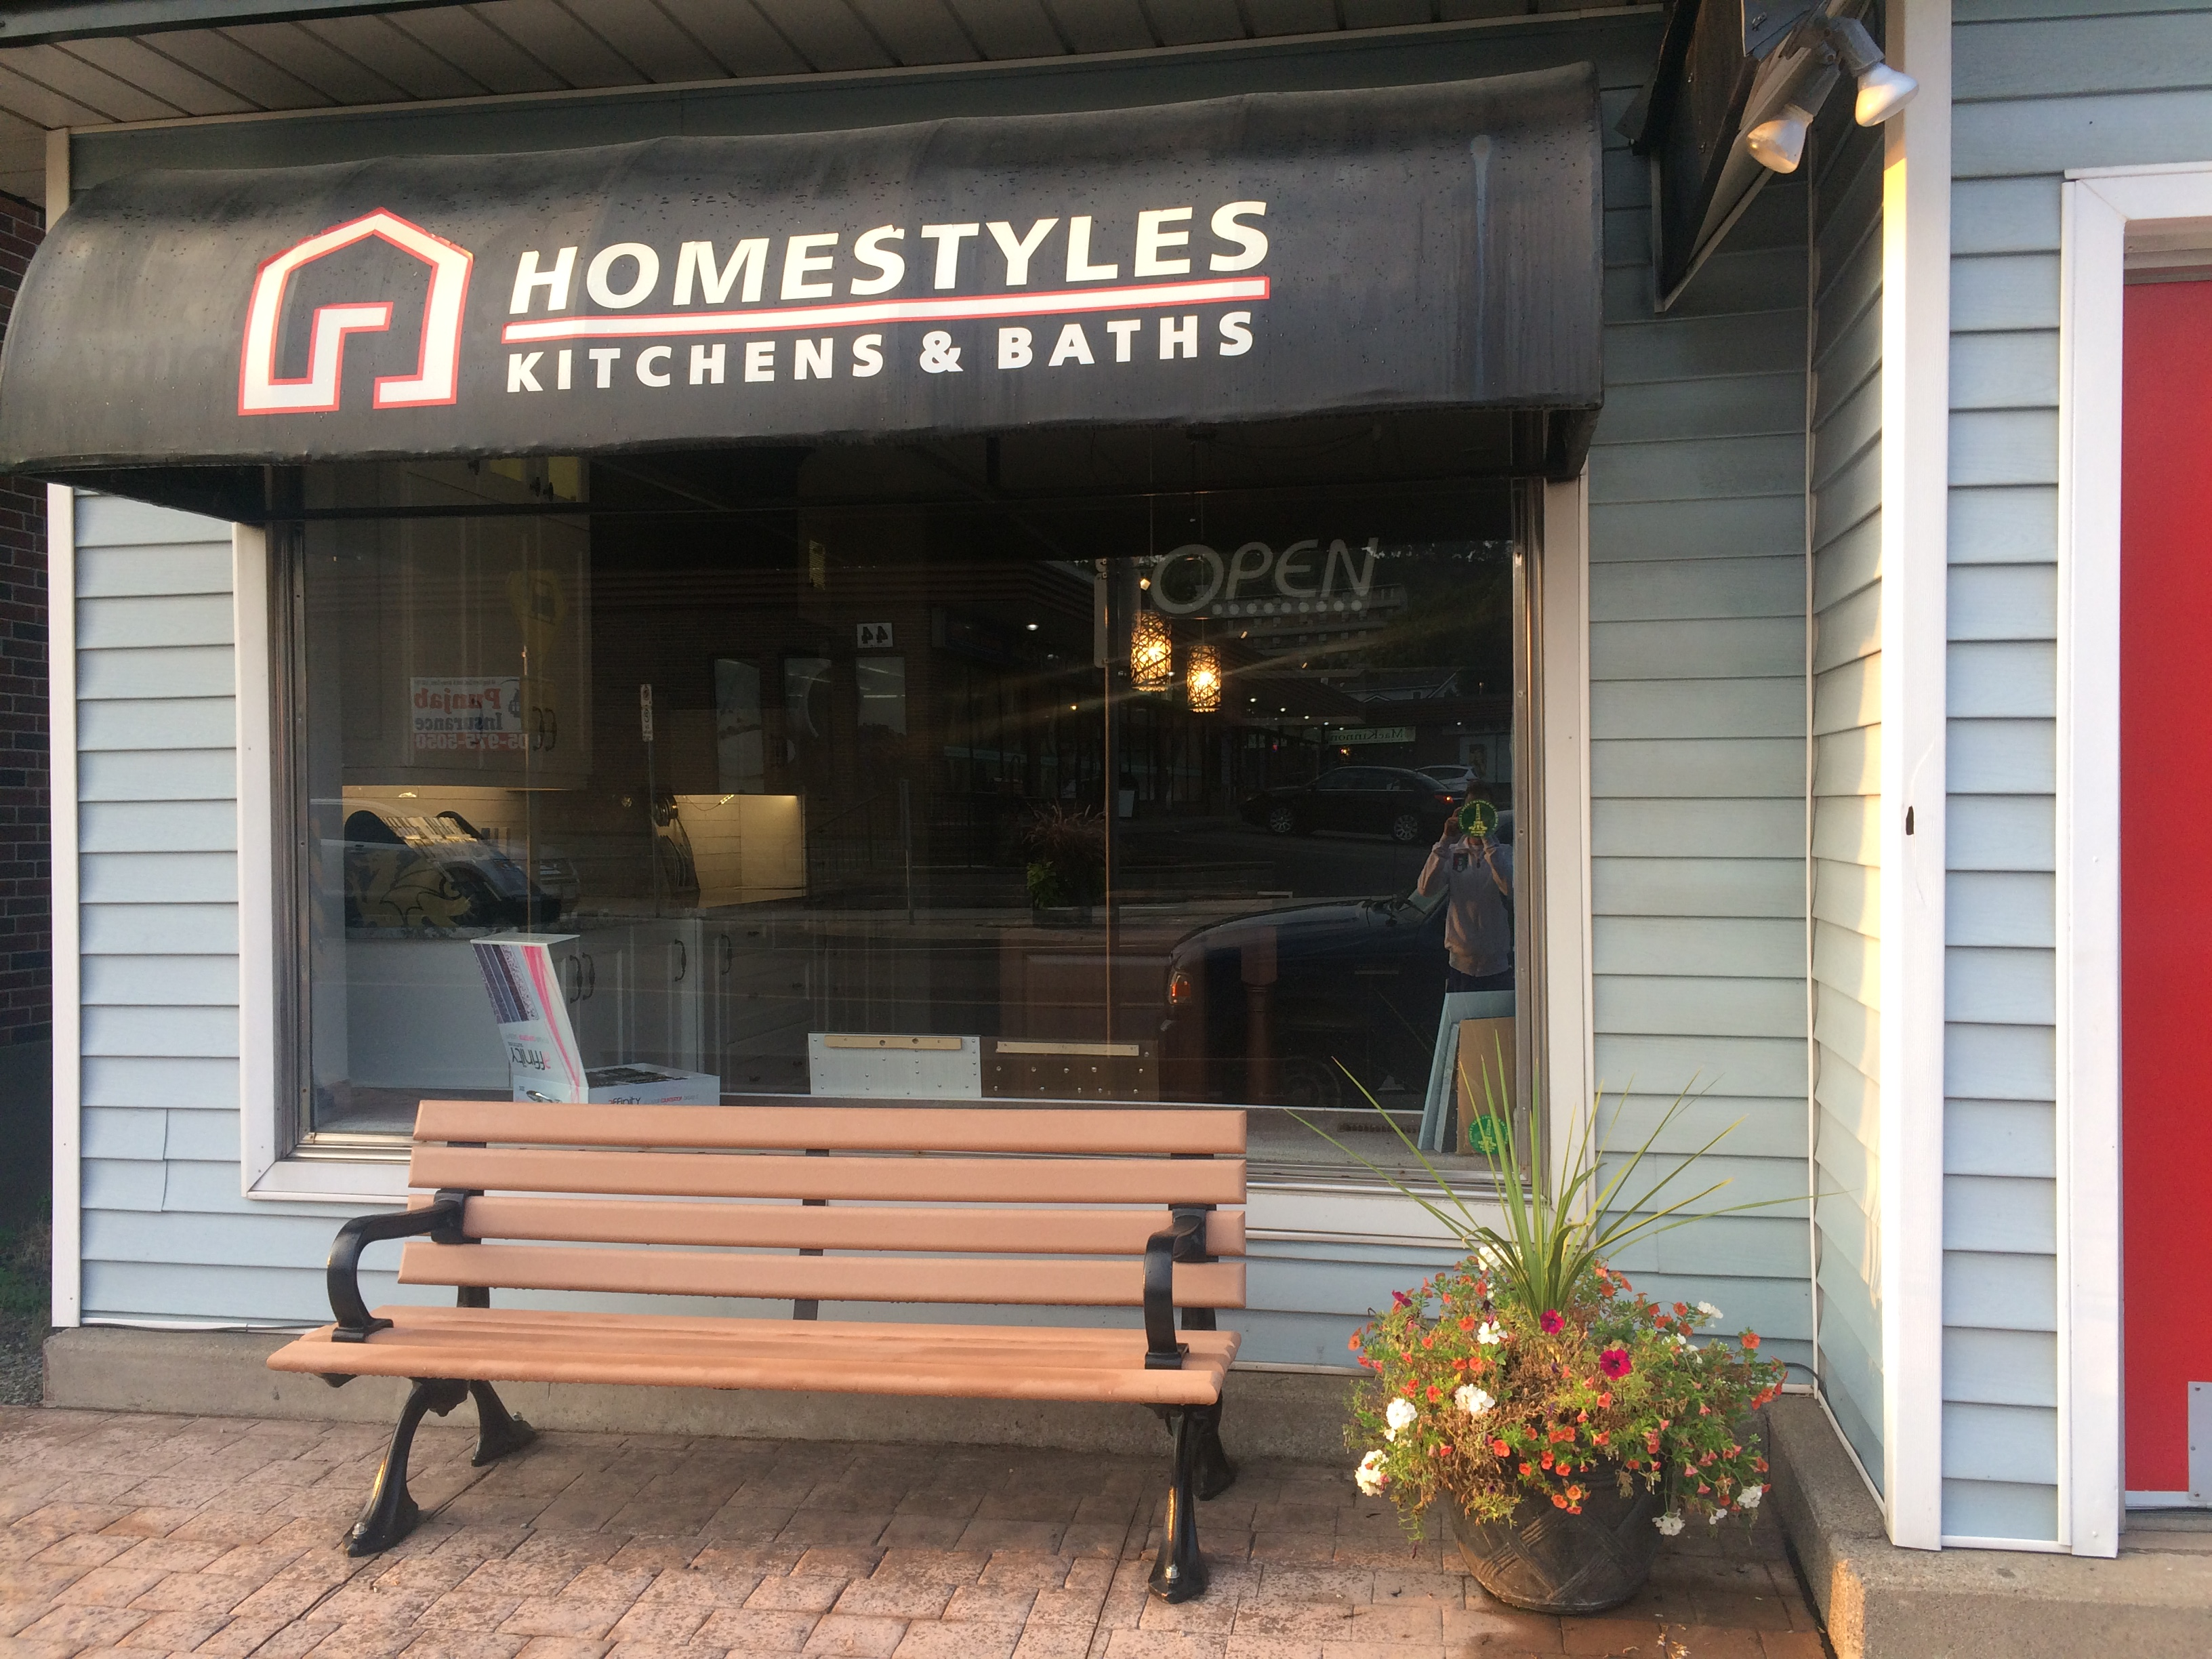 Homestyles Kitchens and Baths